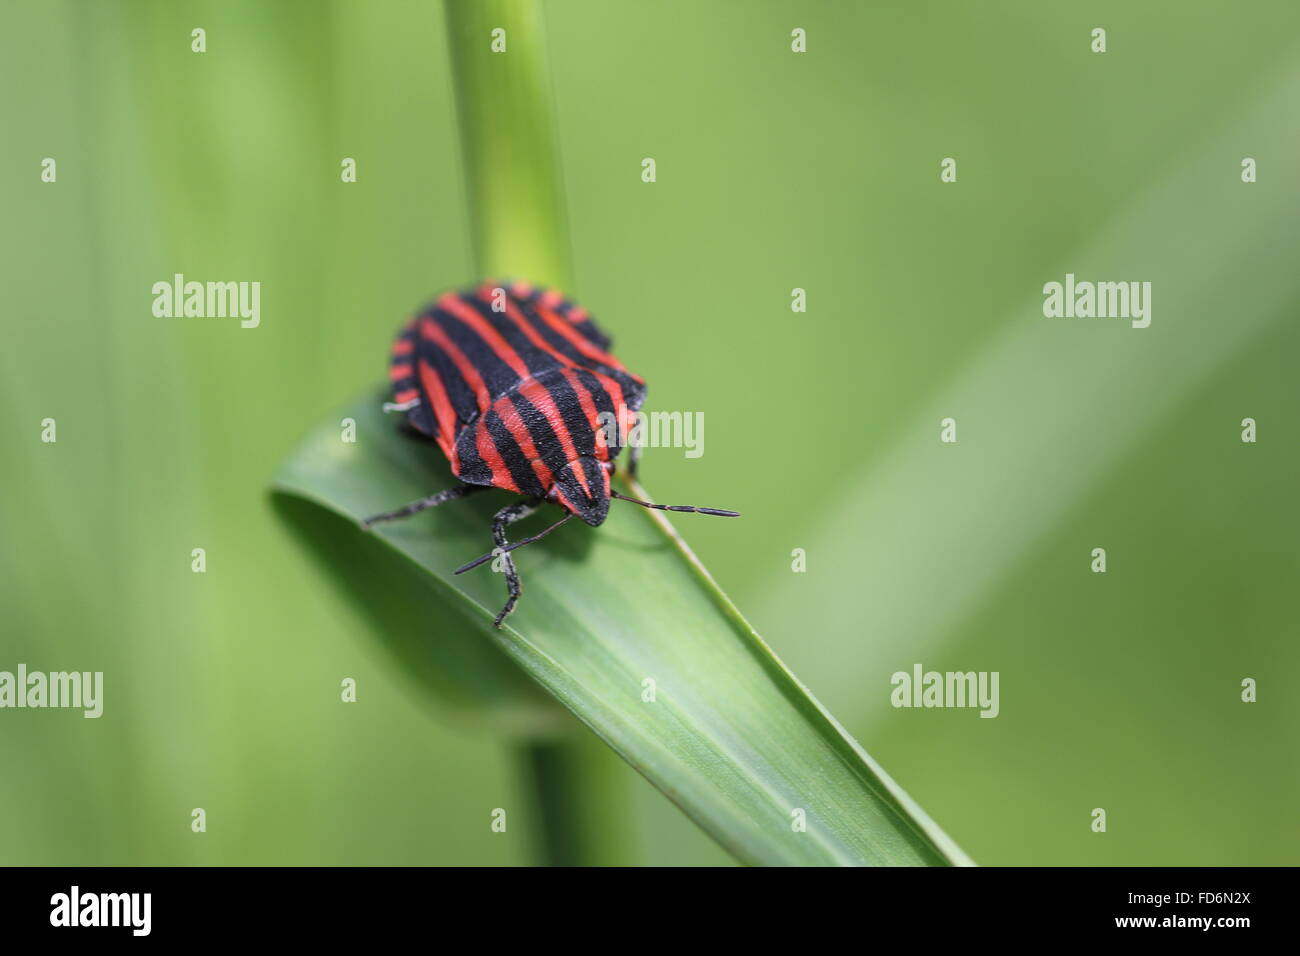 Beetle On Grass Blade - Stock Image